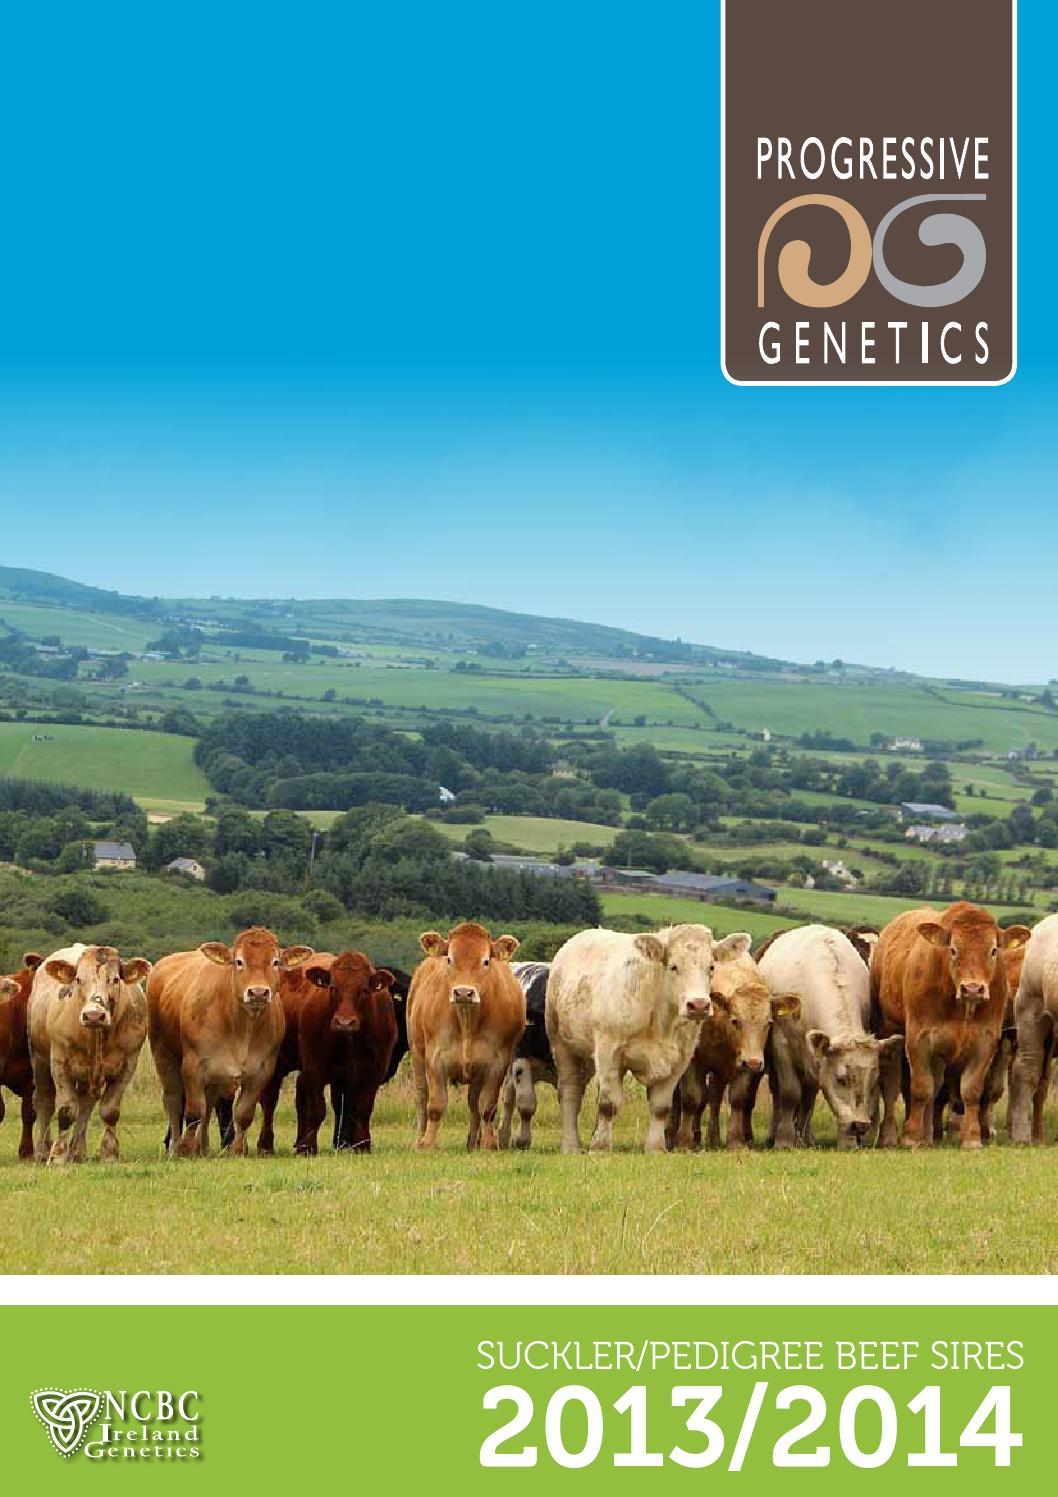 Pg beef sires 2013 14 by Larry Feeney - issuu